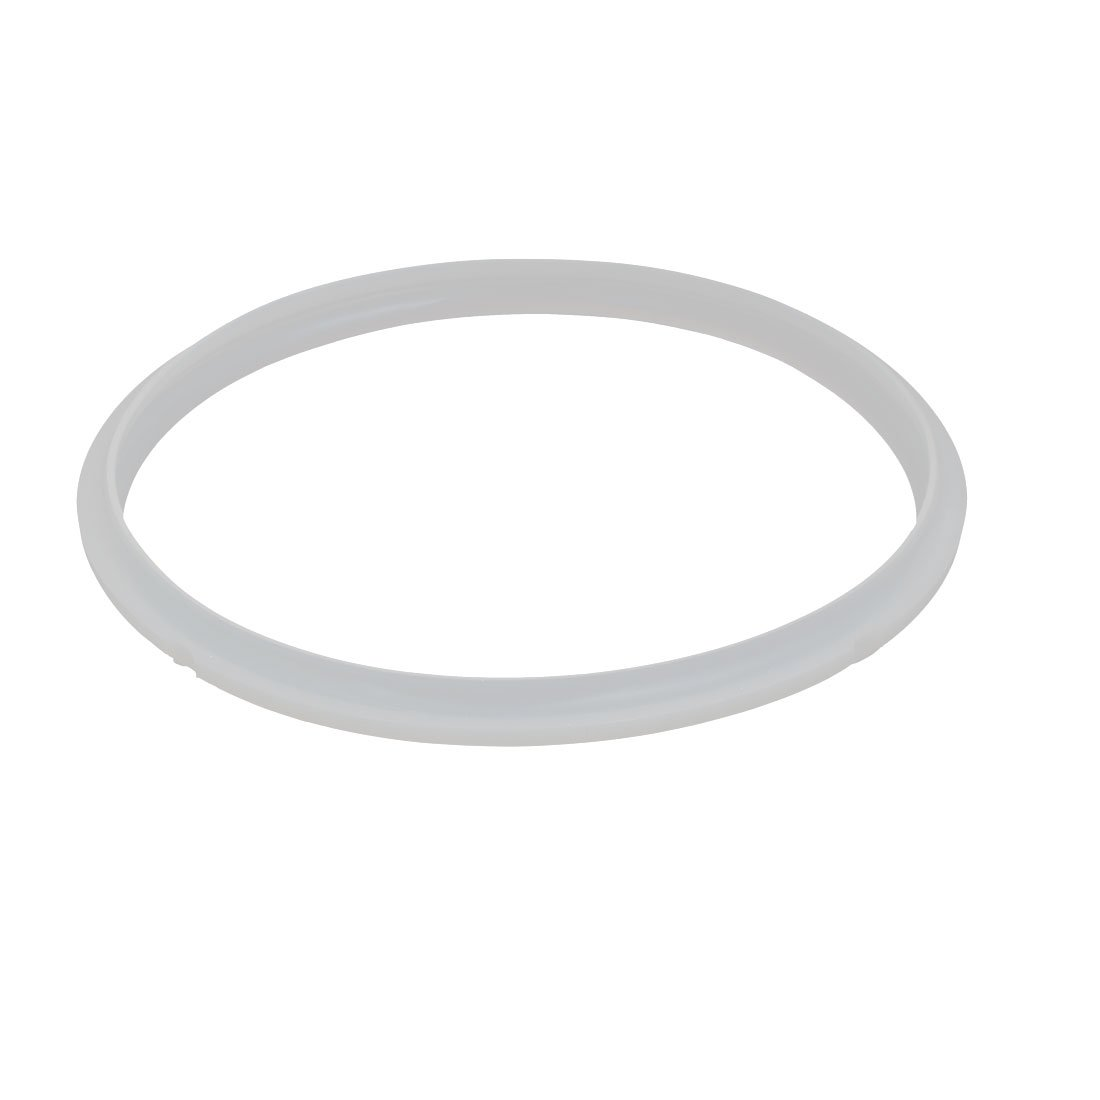 uxcell 22cm Inner Dia Household Kitchen Pressure Cooker Rubber Pot Sealing Ring Clear a17060100ux0144